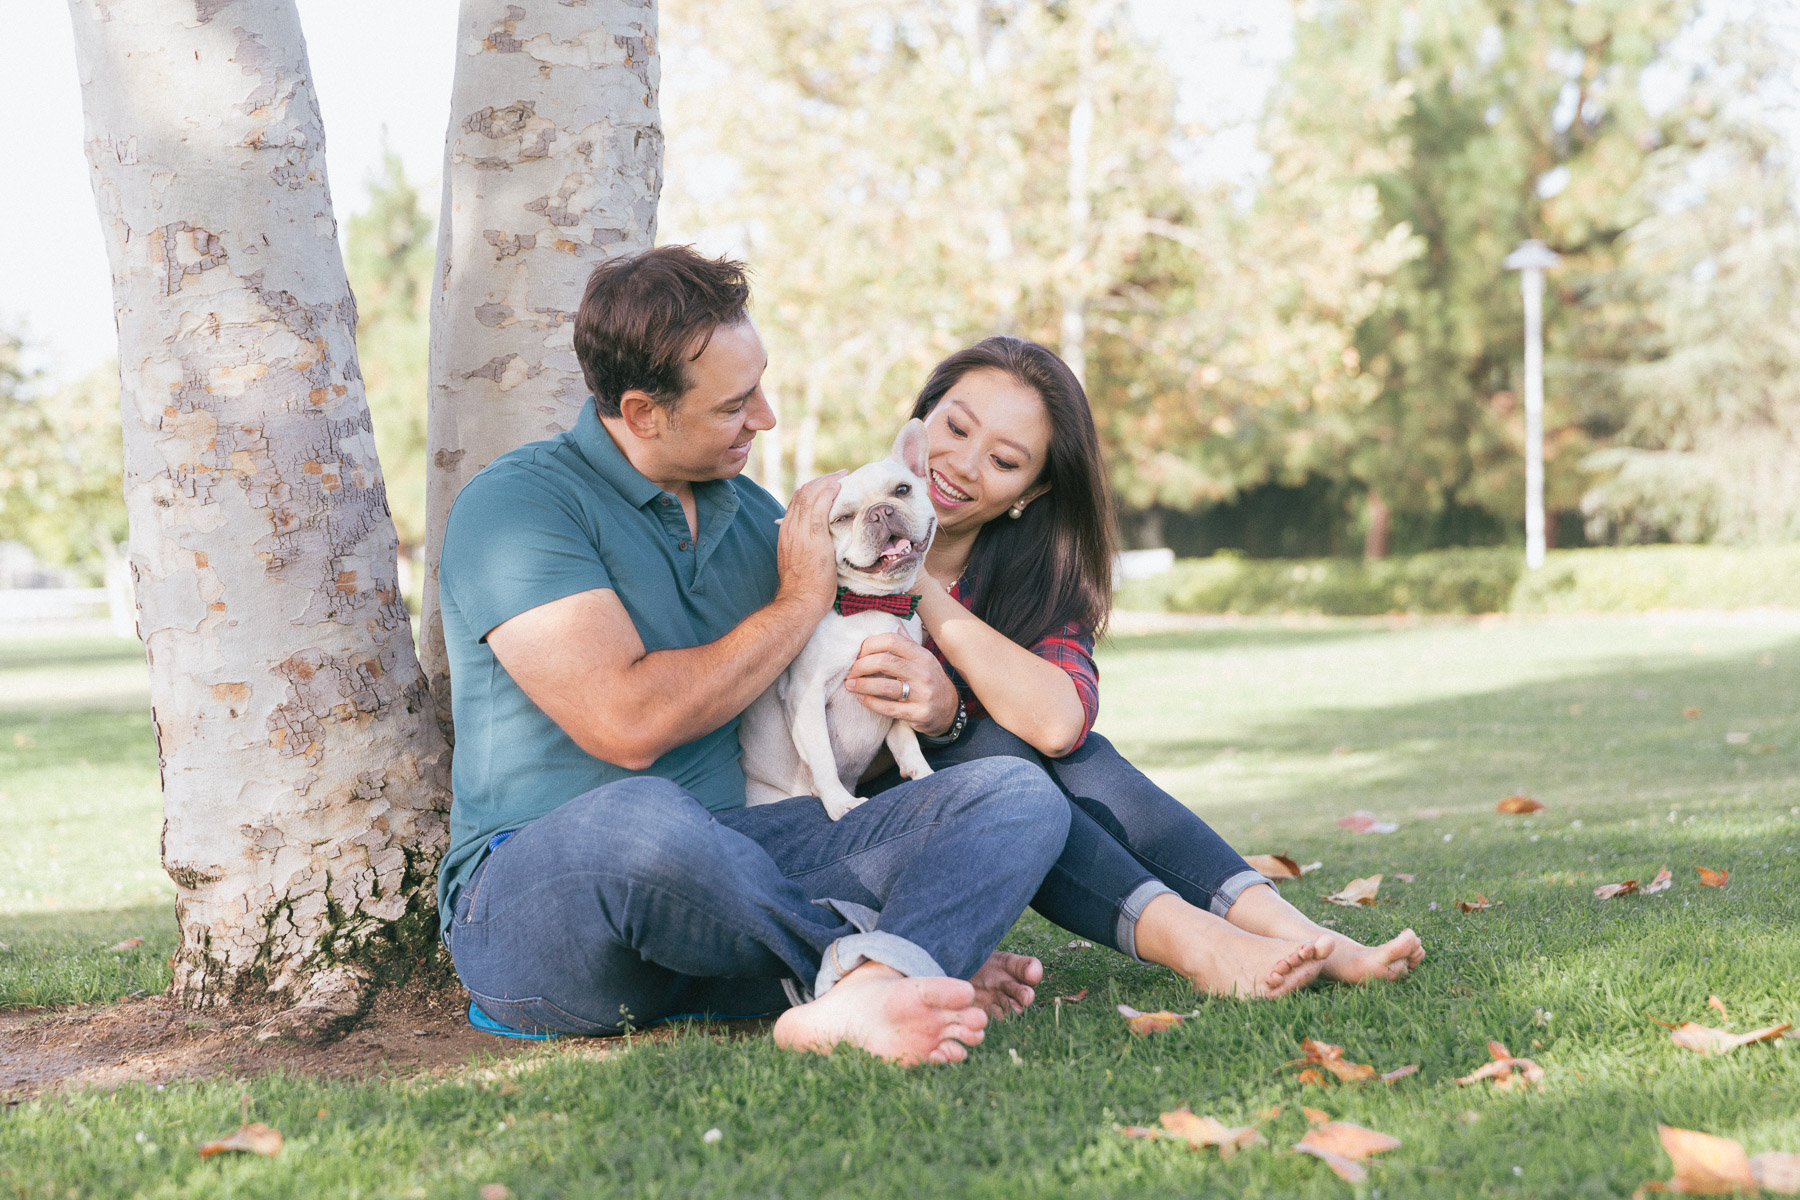 couple-with-dog-outdoors-parc-having-fun-with-dog.jpg